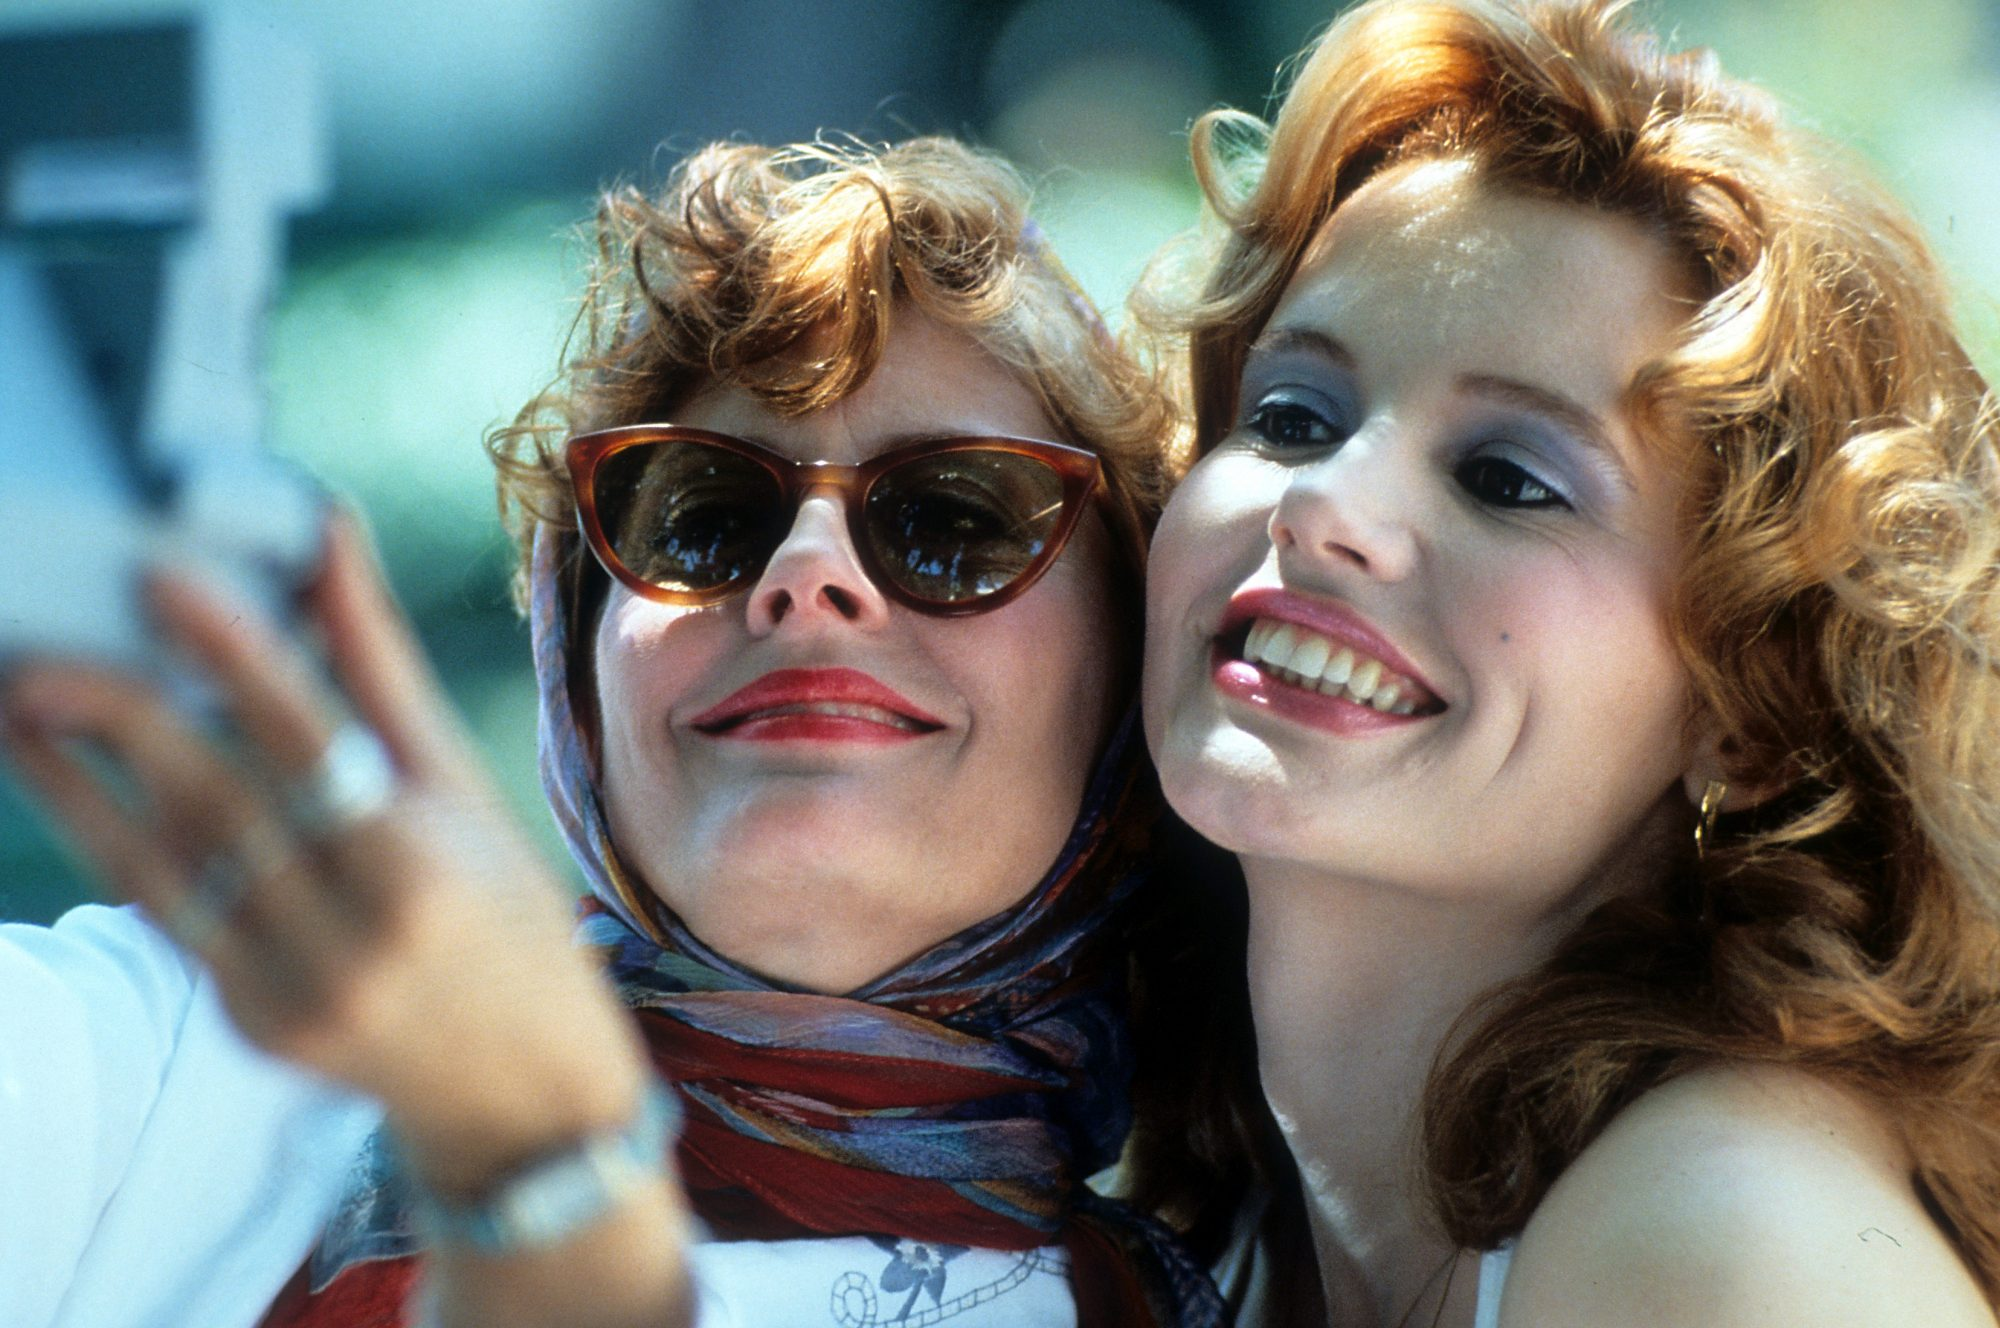 Thelma and Louise, Thelma & Louise